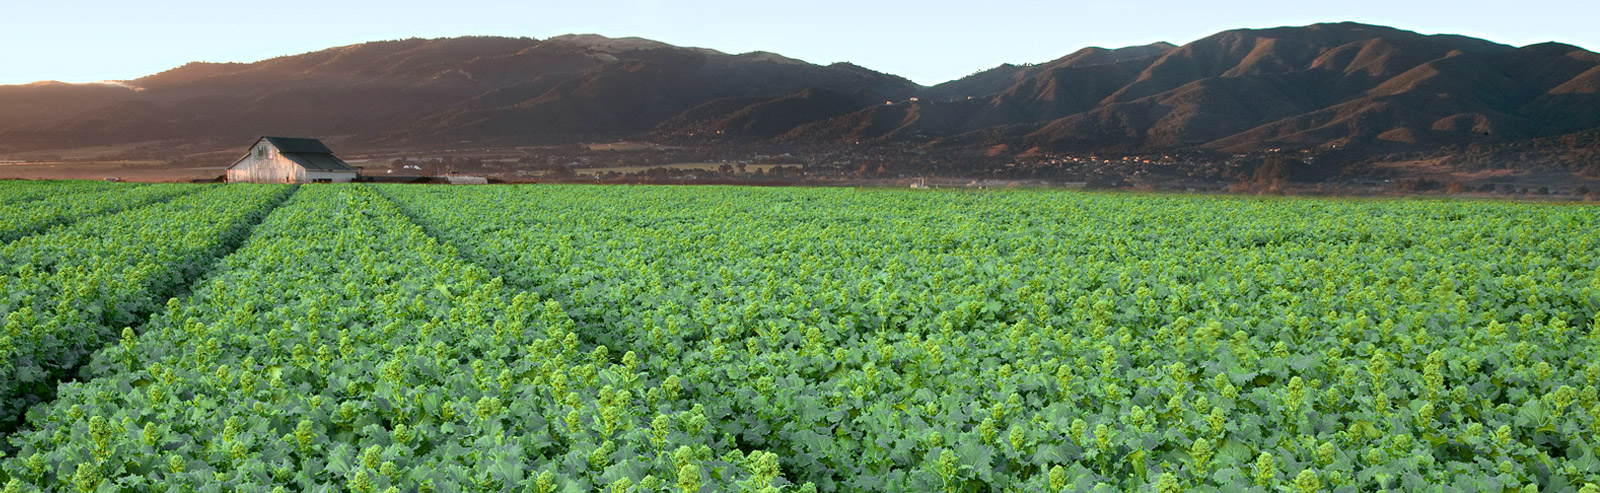 Andy Boy rapini fields in Salinas, California. | Photo: Courtesy D'Arrigo Brothers/Andy Boy